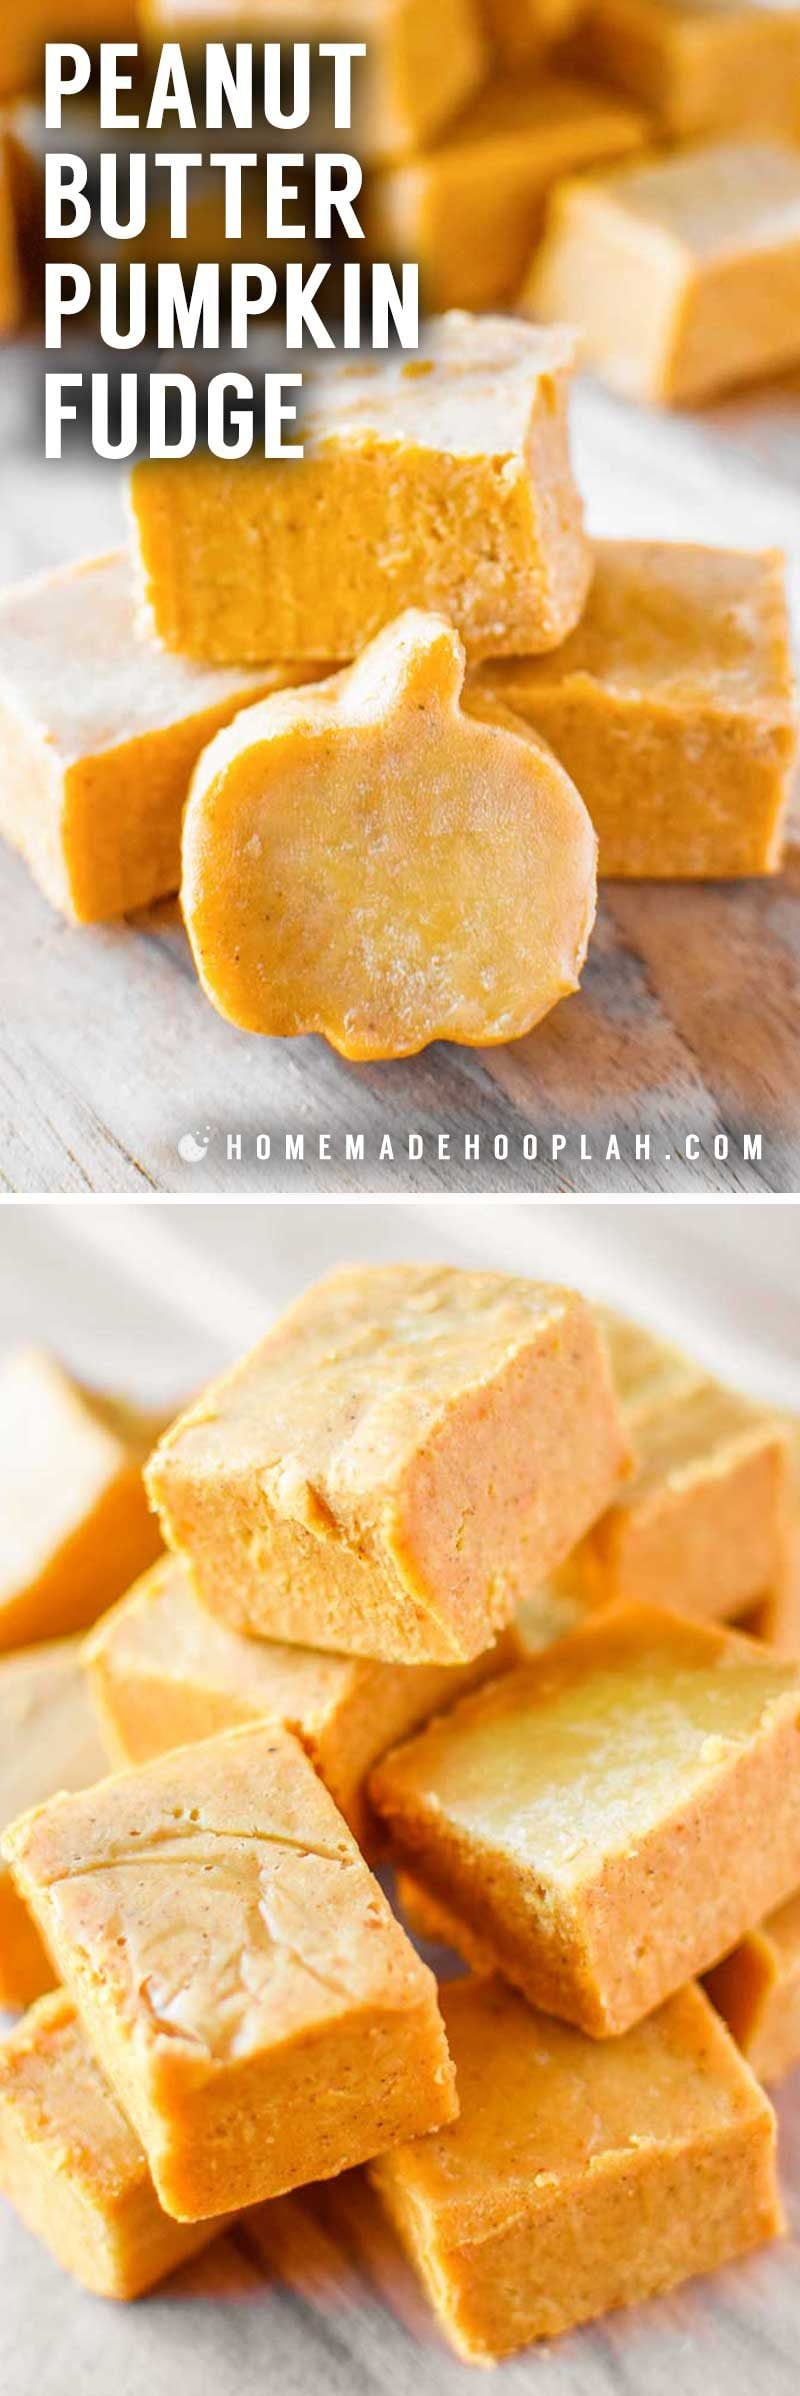 Easy pumpkin fudge recipe with peanut butter.